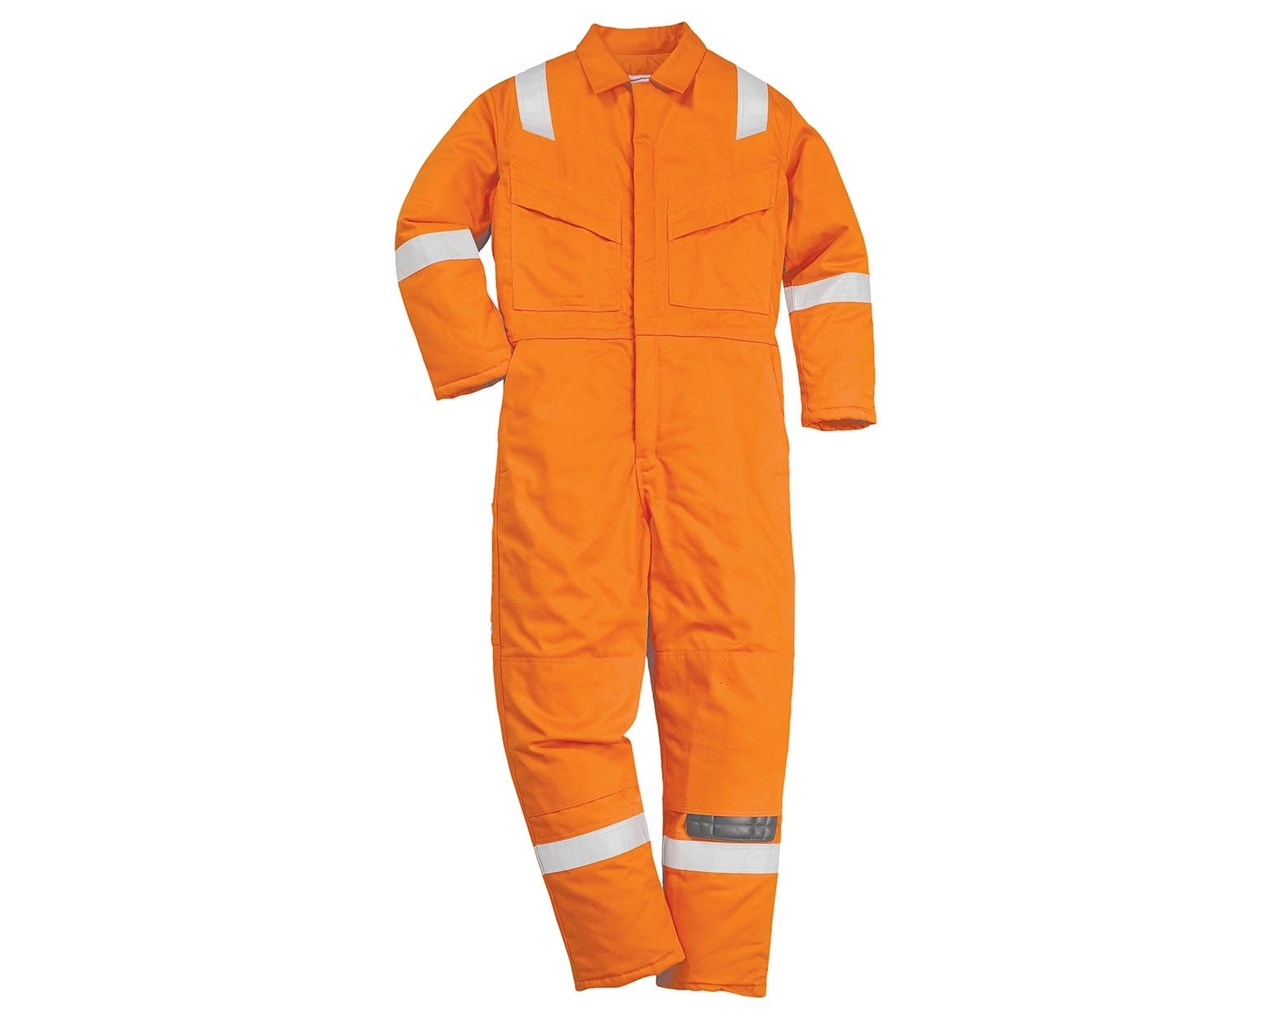 PORTWEST FR21 FIRE RETARDENT COVERALL (NAVY BLUE, RED AND ORANGE COLOUR)